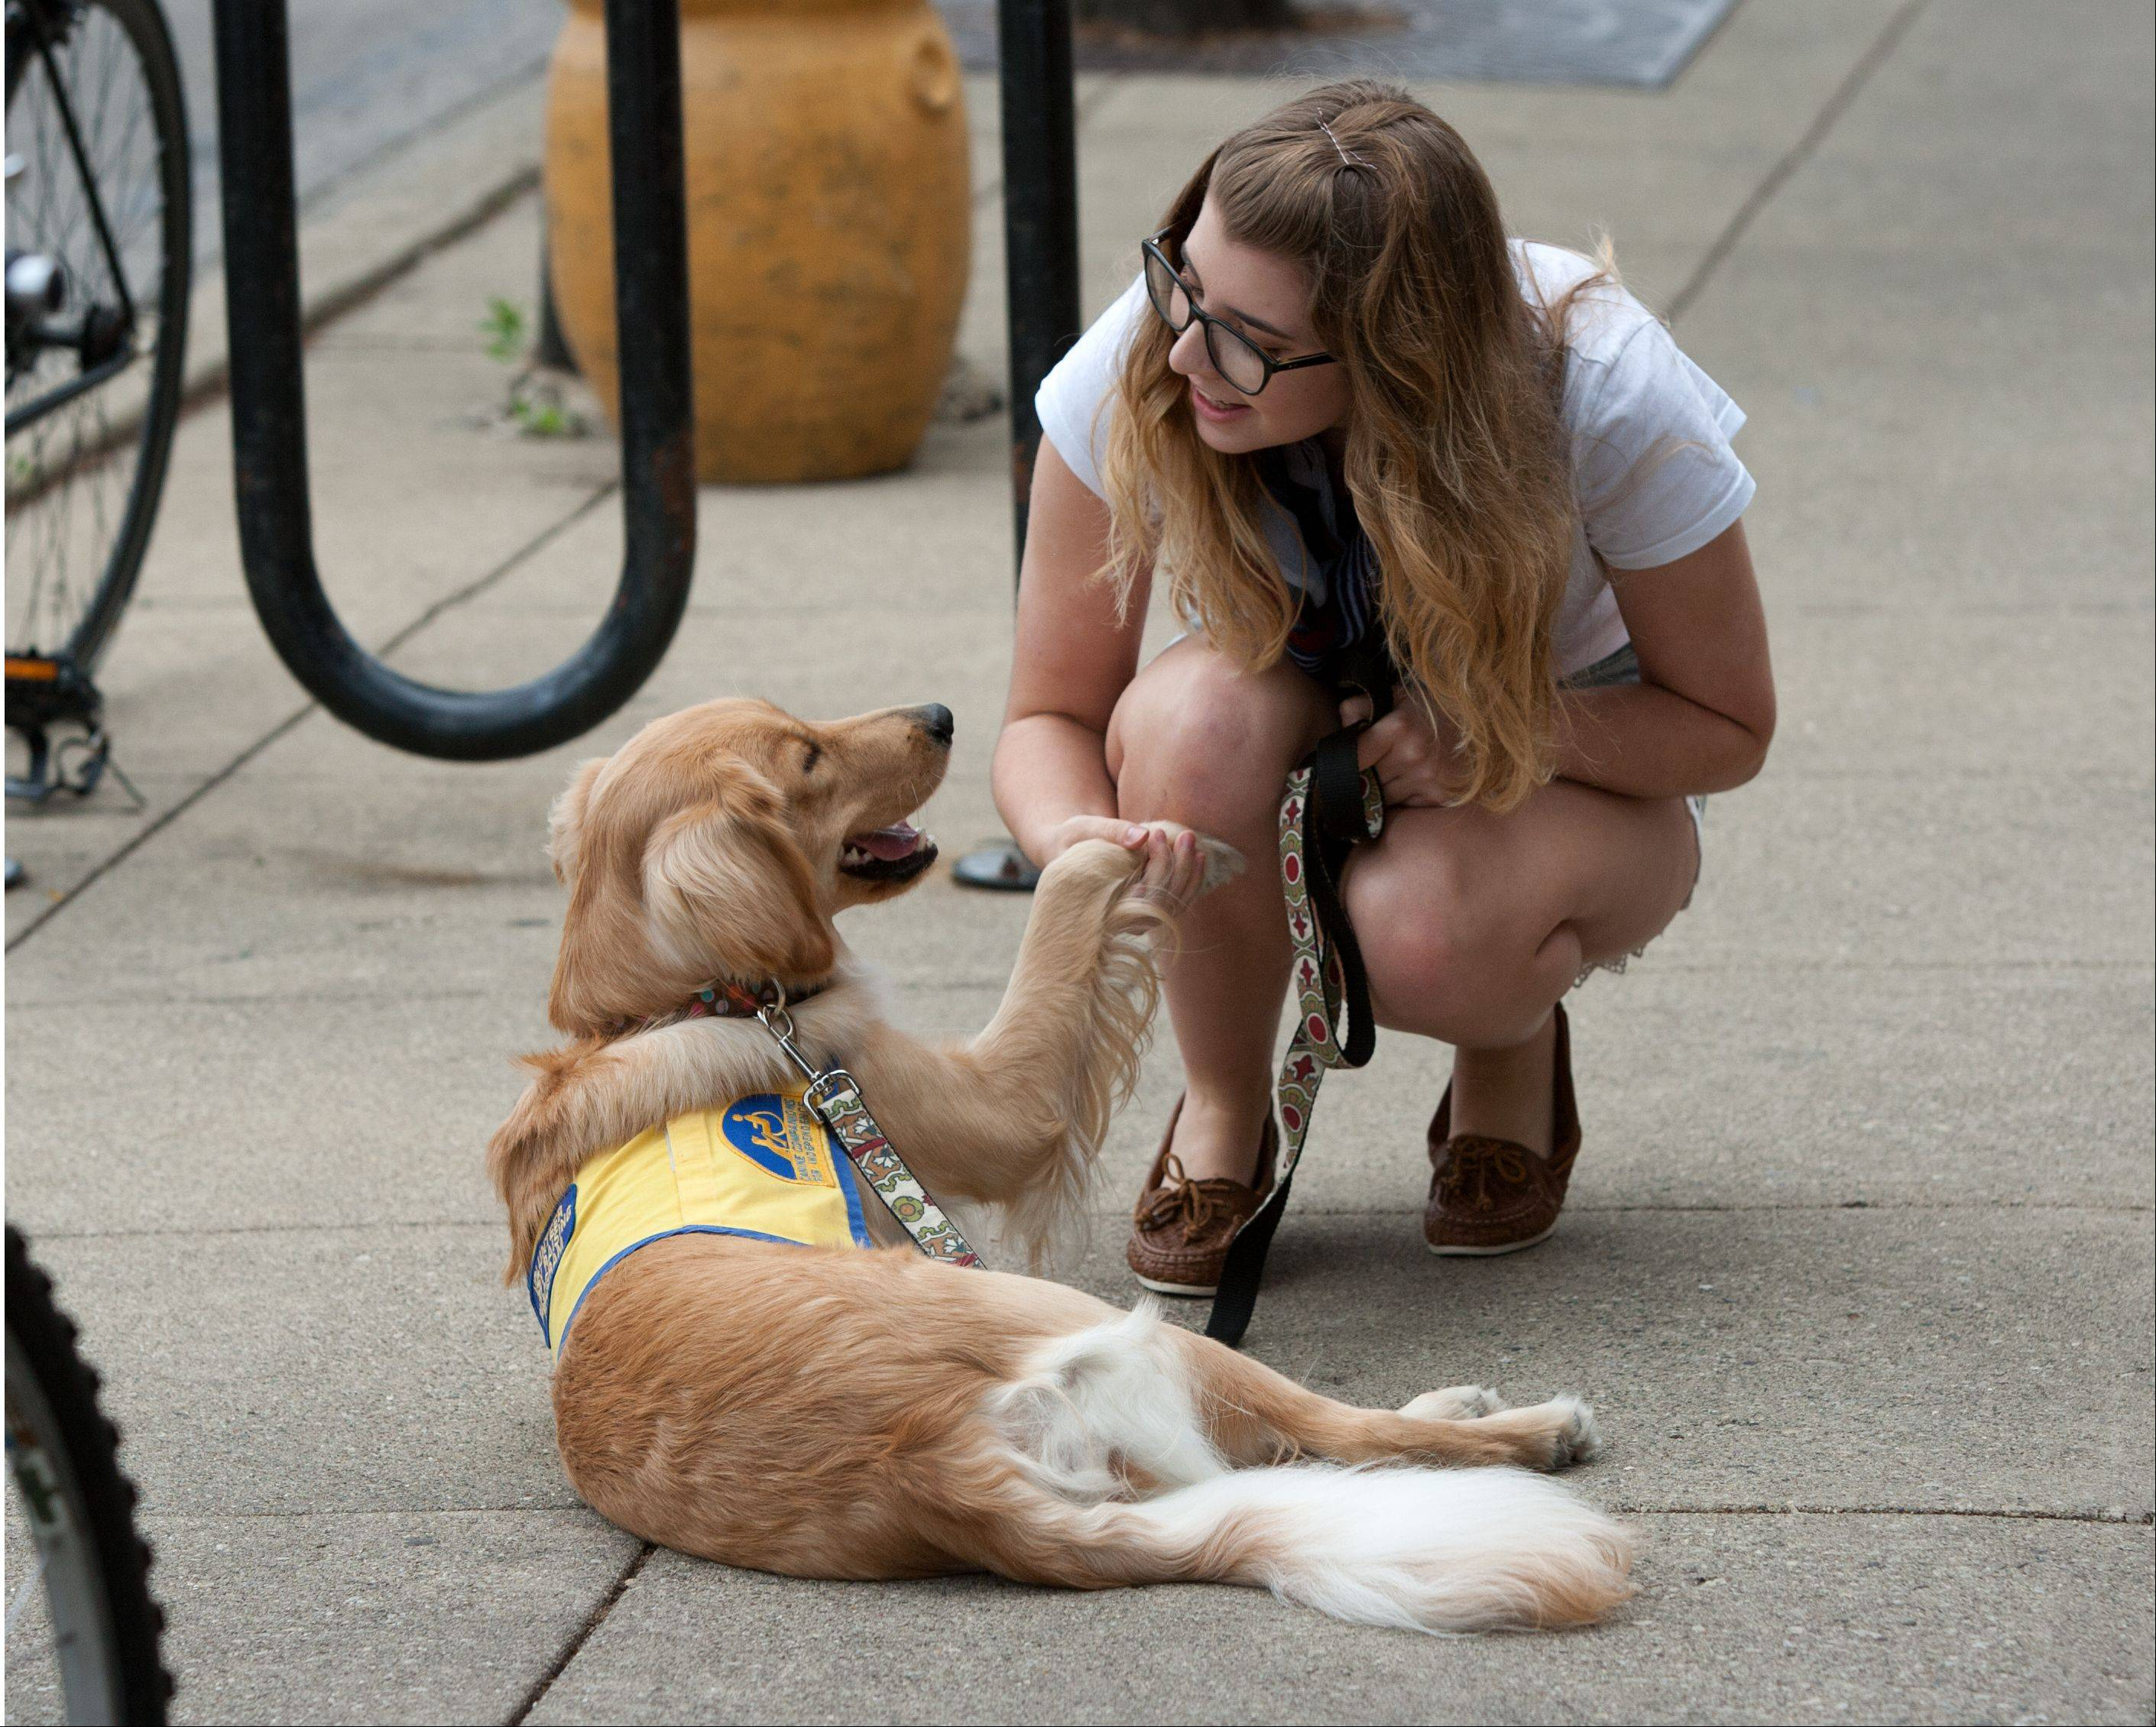 Glenbard West High School student Morgan Riley shakes hands with Friday, who she is raising for Canine Companions for Independence, which provides service dogs for people with disabilities.